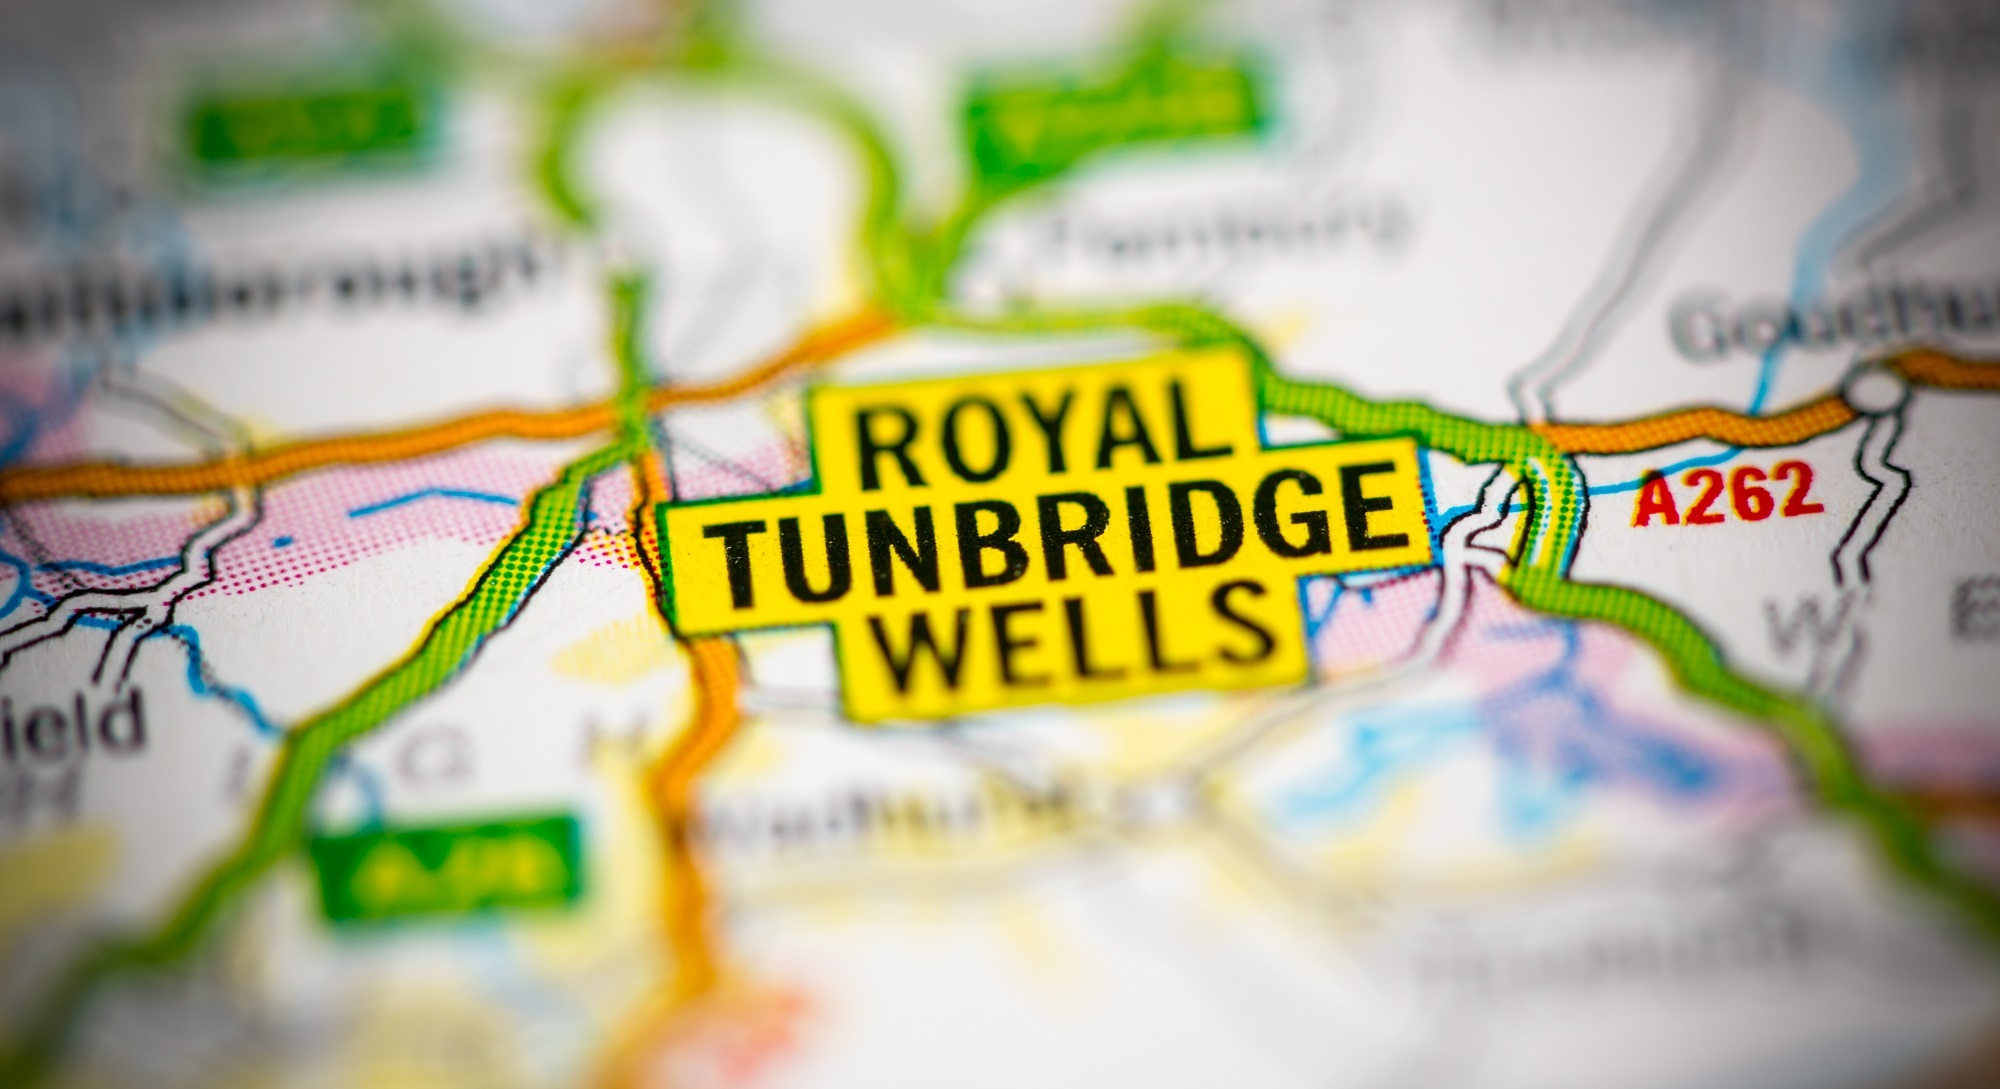 Everything you need to know about living in Tunbridge Wells